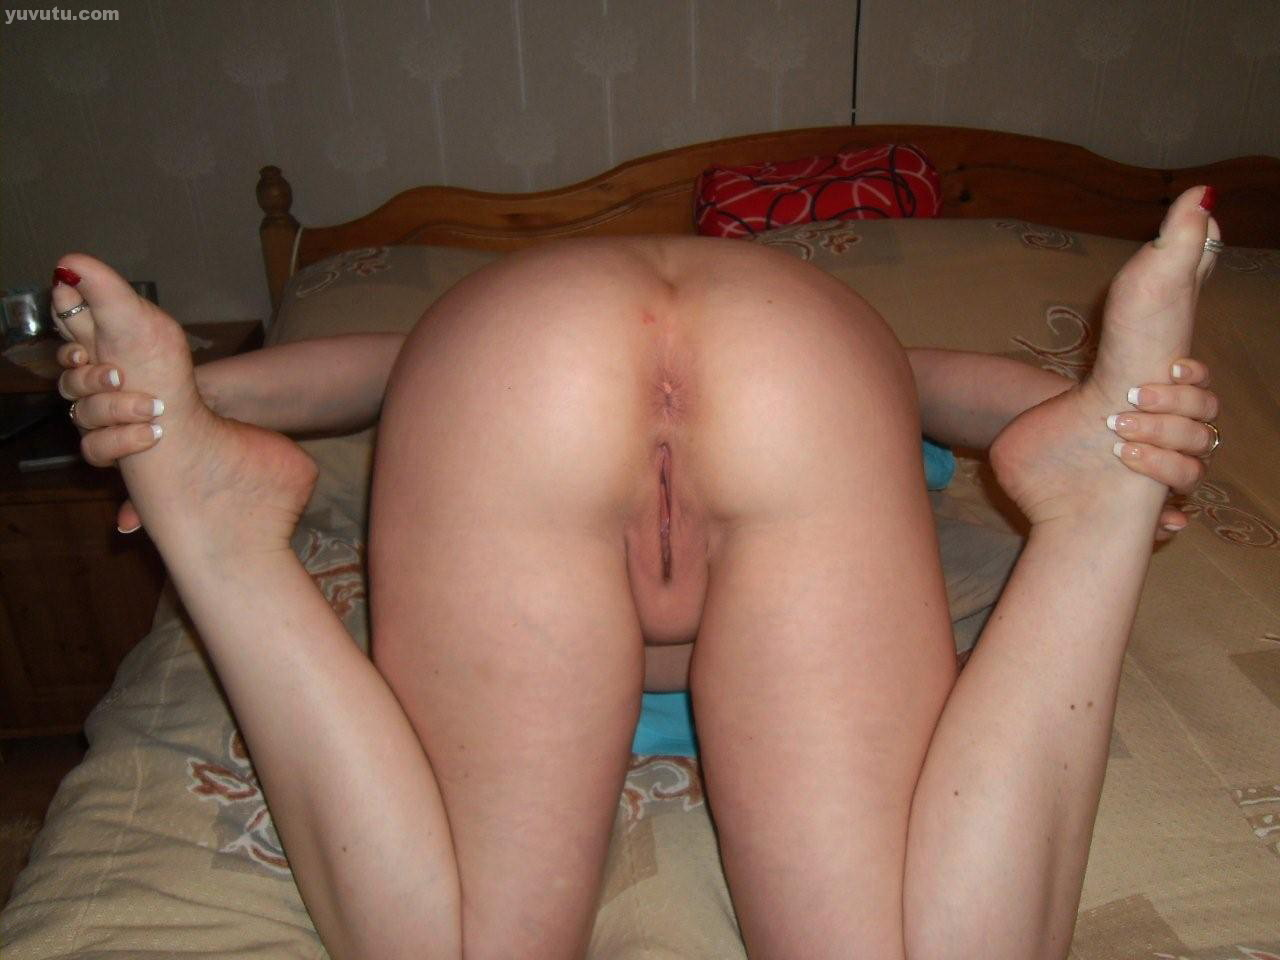 freee amateur pussy photo